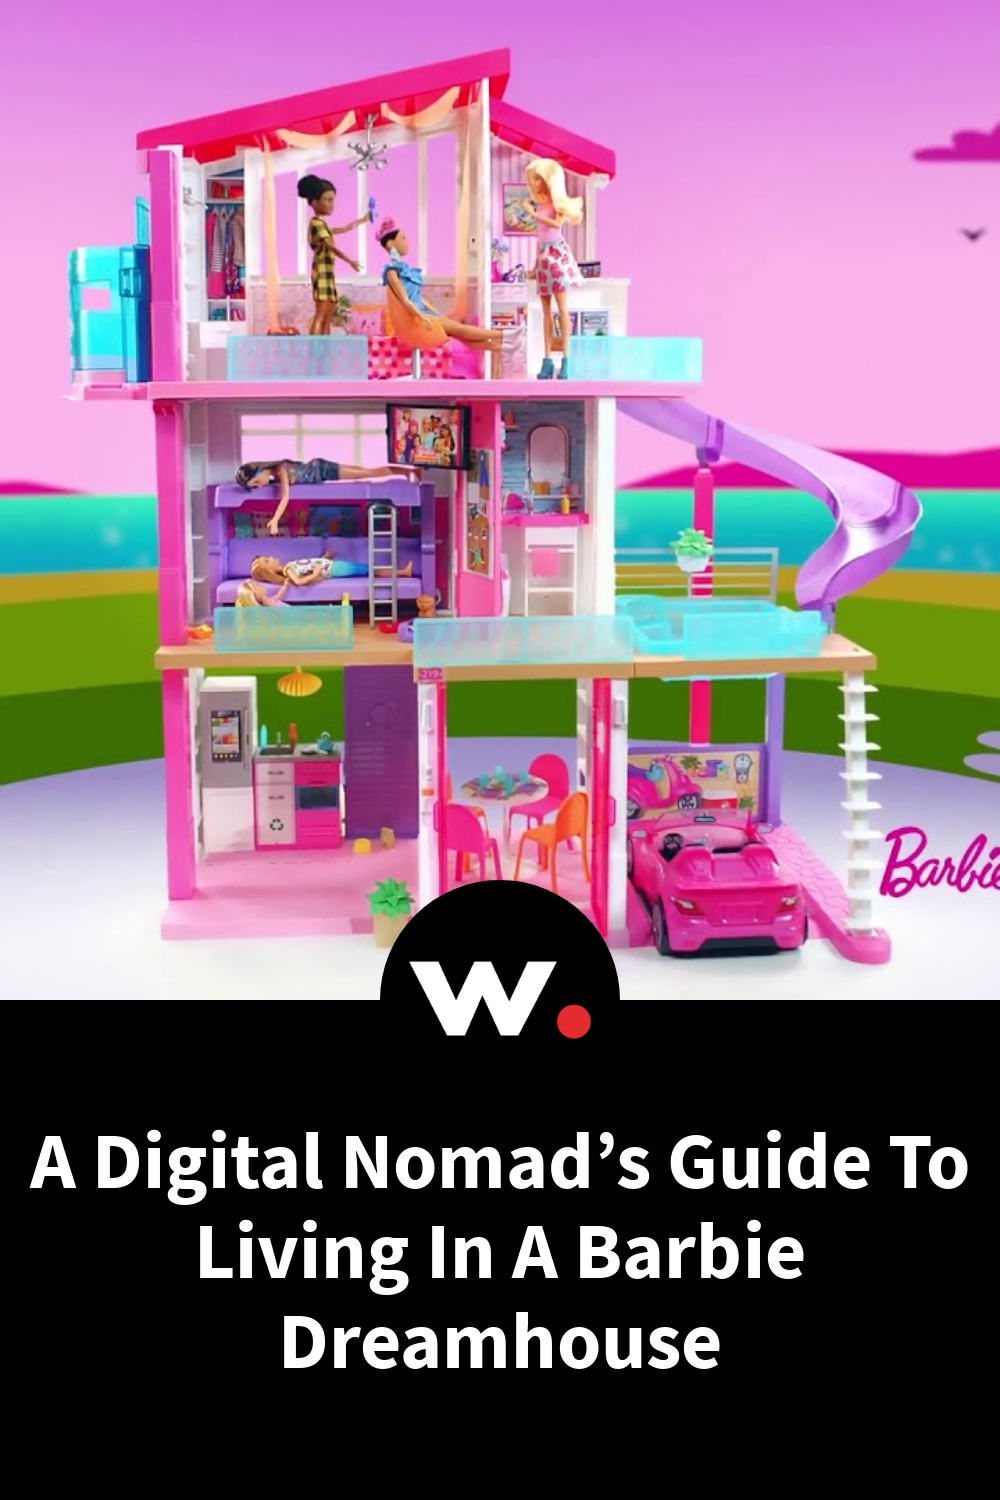 A Digital Nomad's Guide To Living In A Barbie Dreamhouse